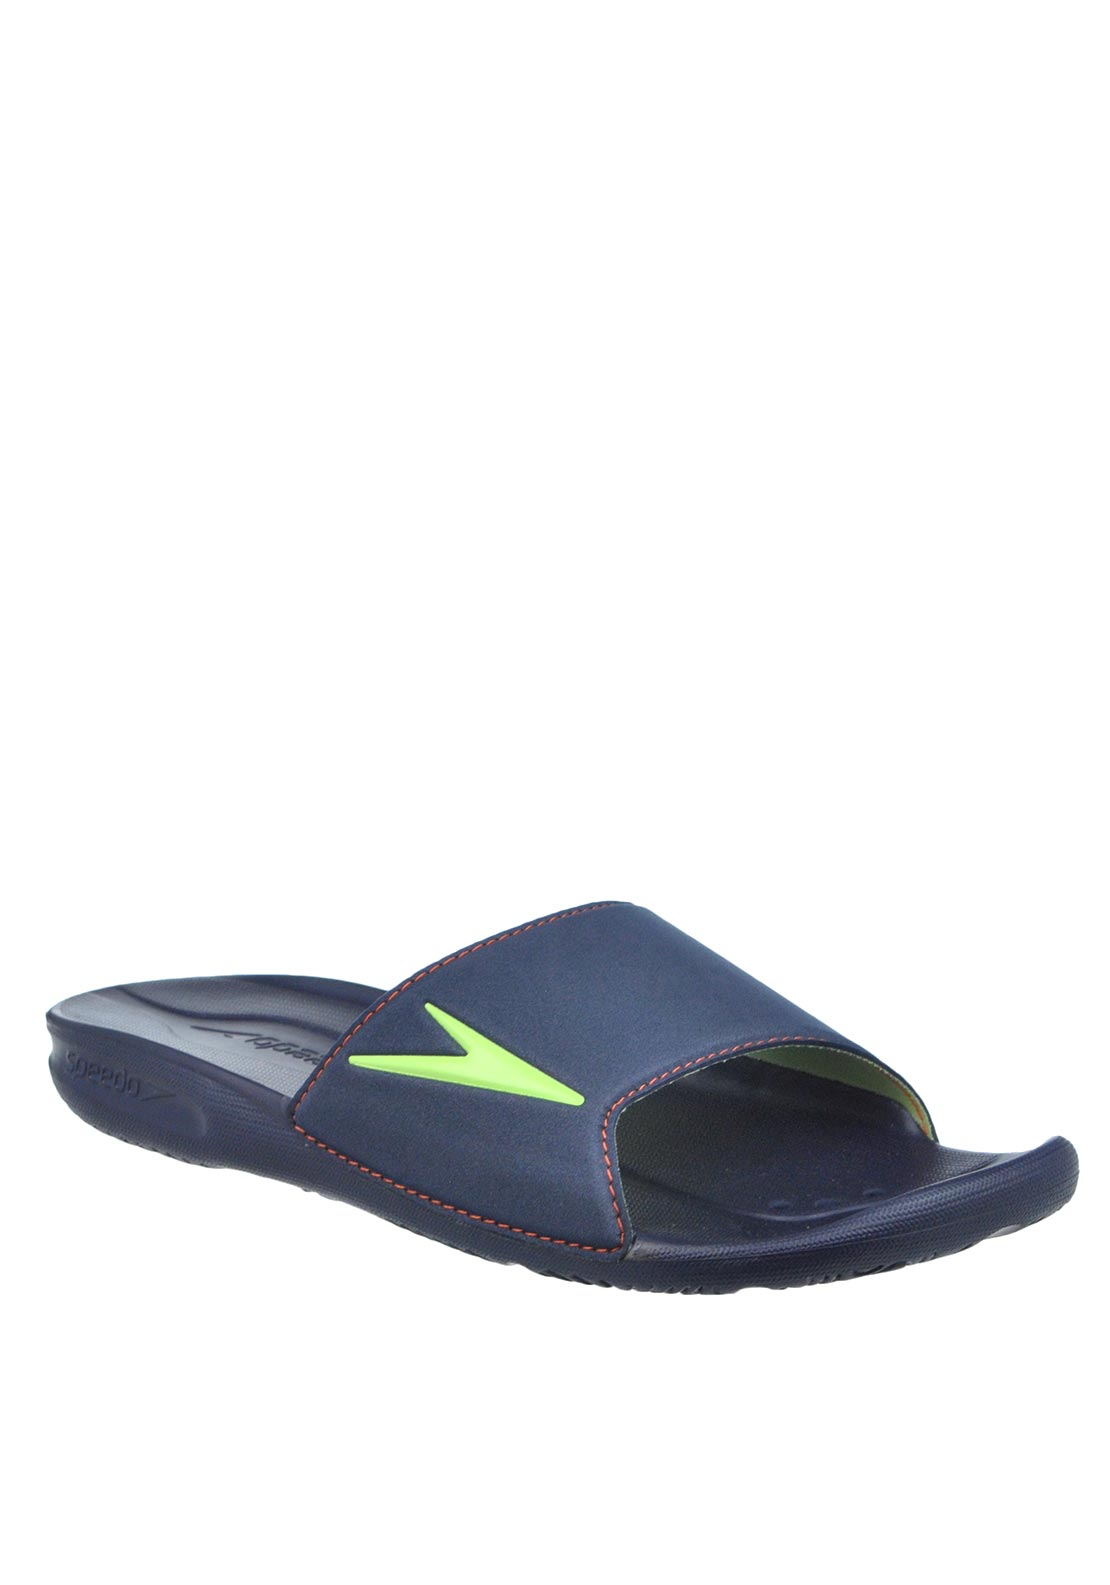 Speedo Mens Atami Slider Pool Sandals, Navy